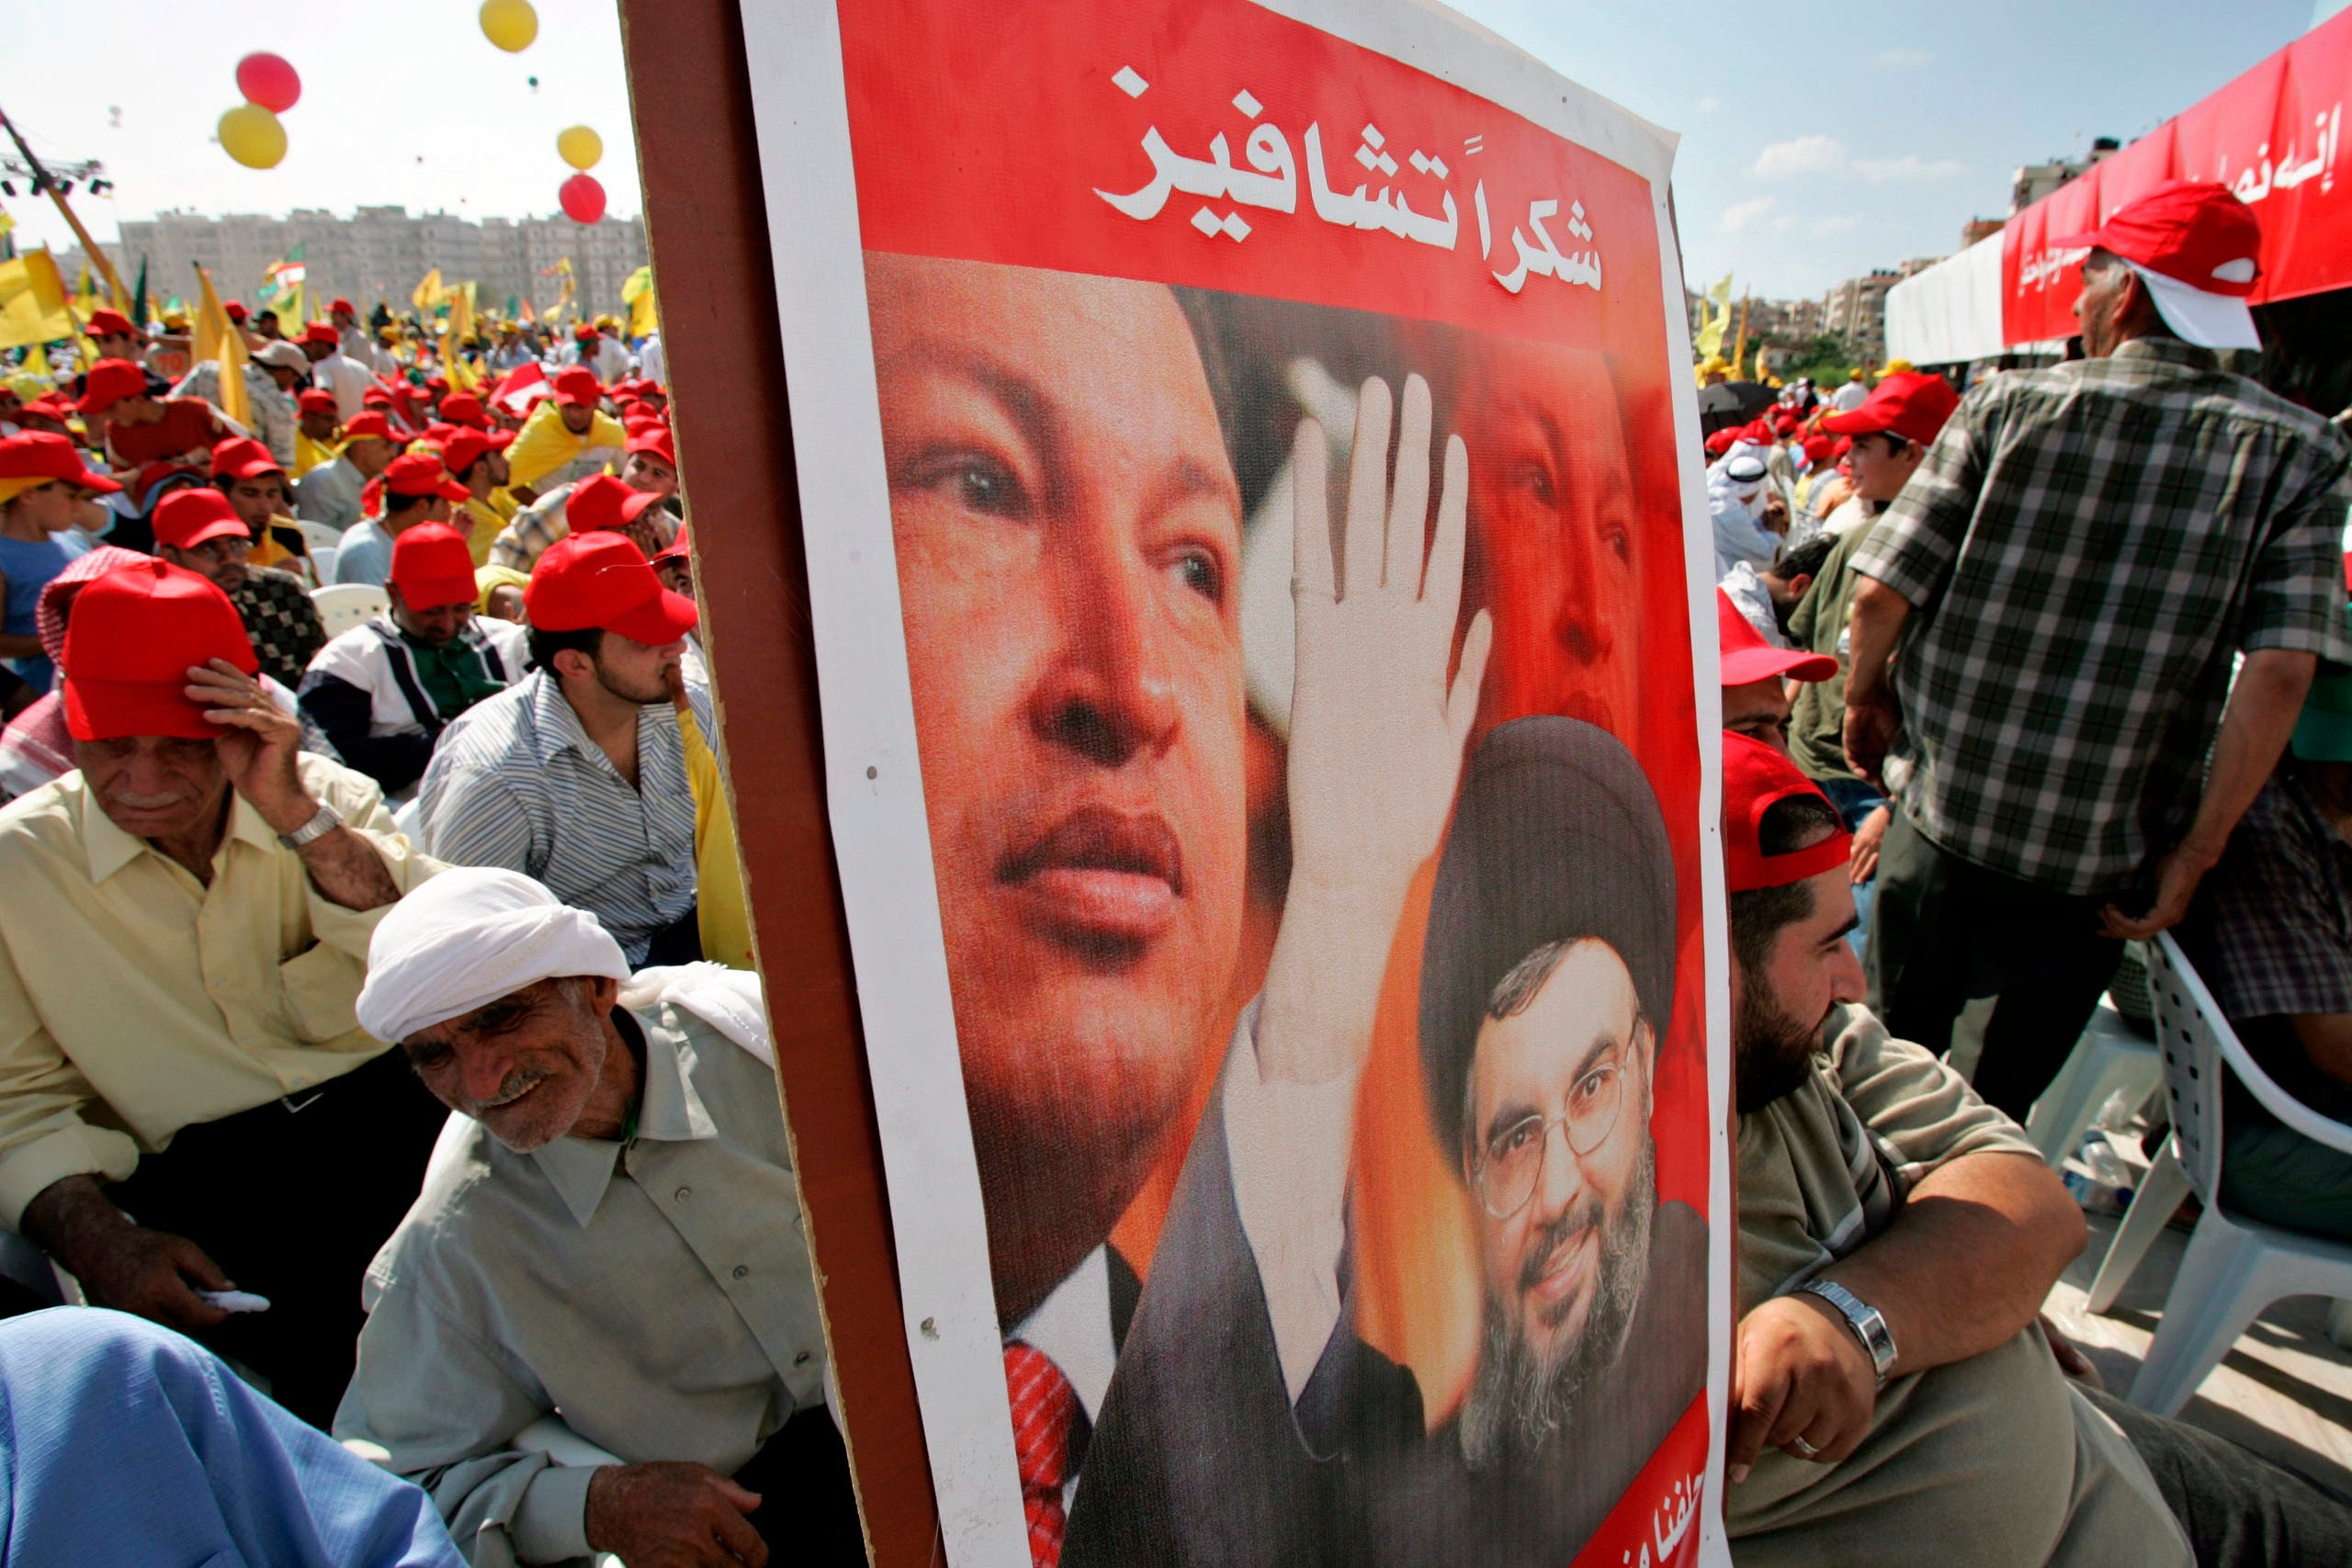 Hezbollah supporters carry a banner showing Hezbollah leader Hassan Nasrallah and Venezuela's then-President Hugo Chavez in Beirut's suburbs on Sept. 22, 2006. (AP)